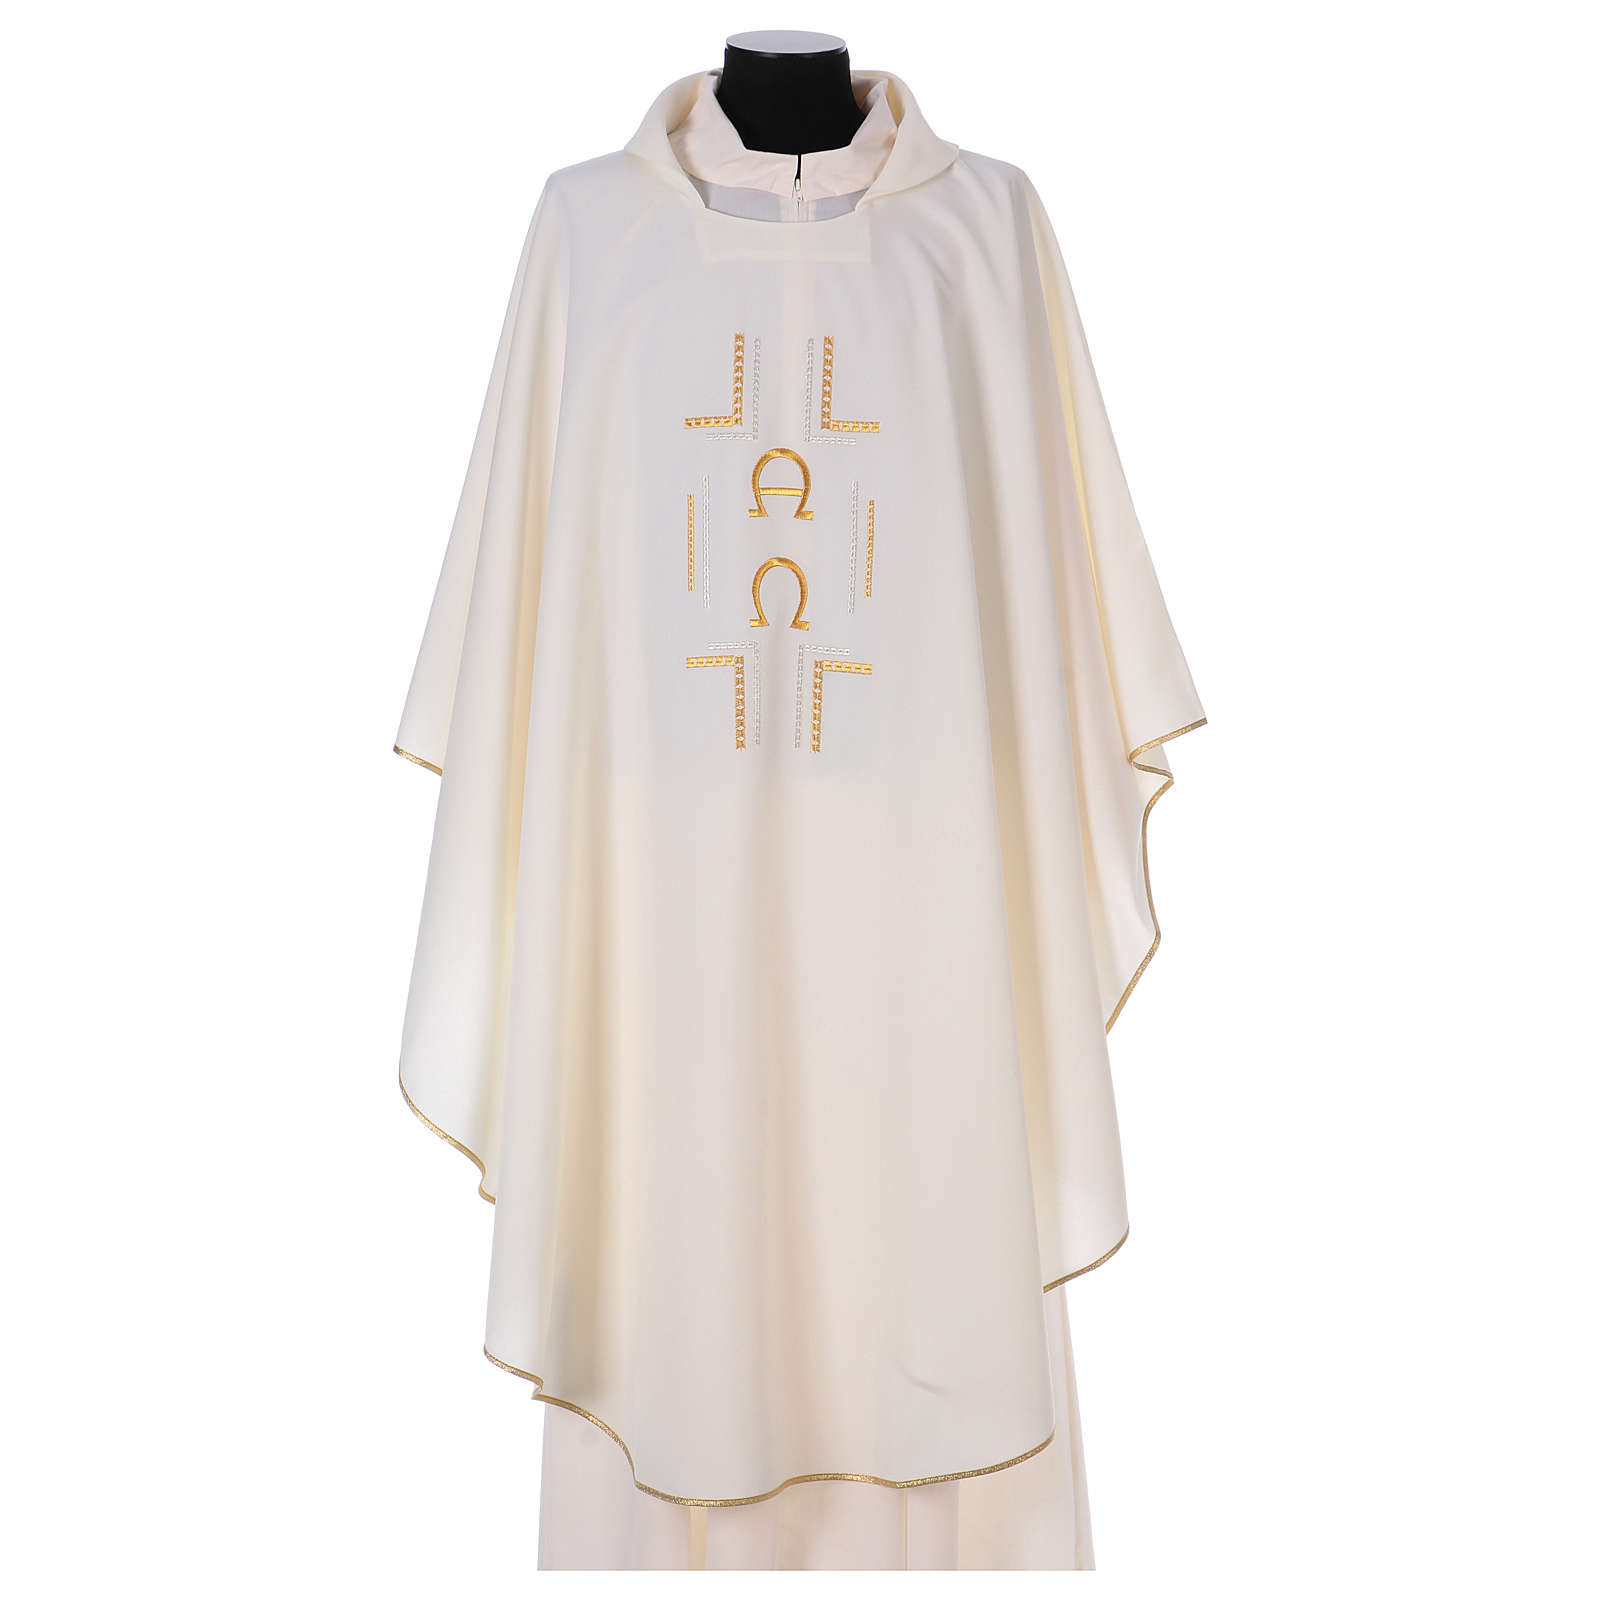 Alpha Omega Priest Chasuble in polyester 4